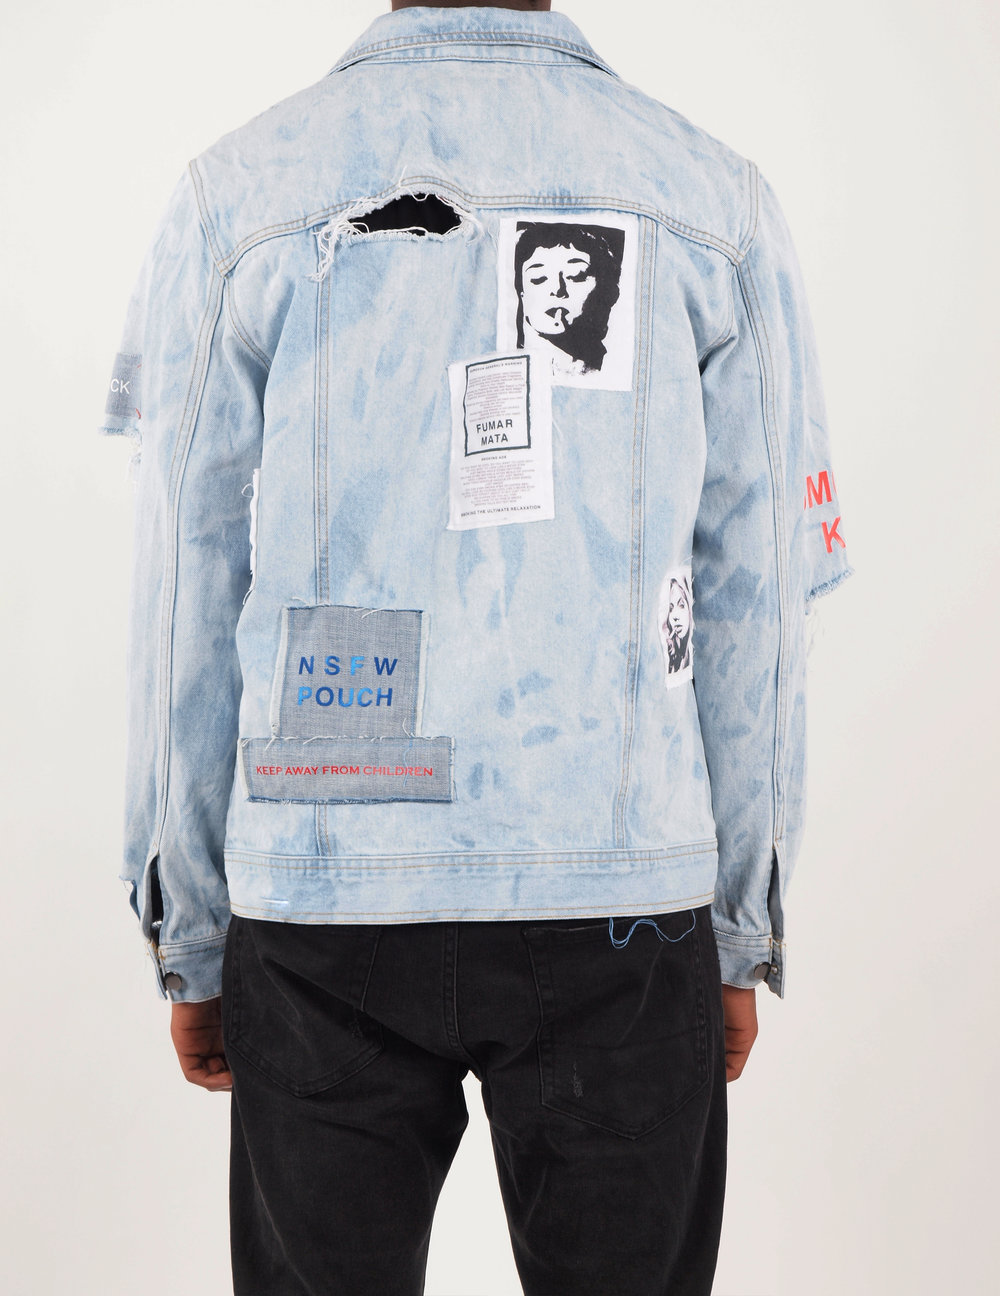 textured blue denim jacket back.jpg